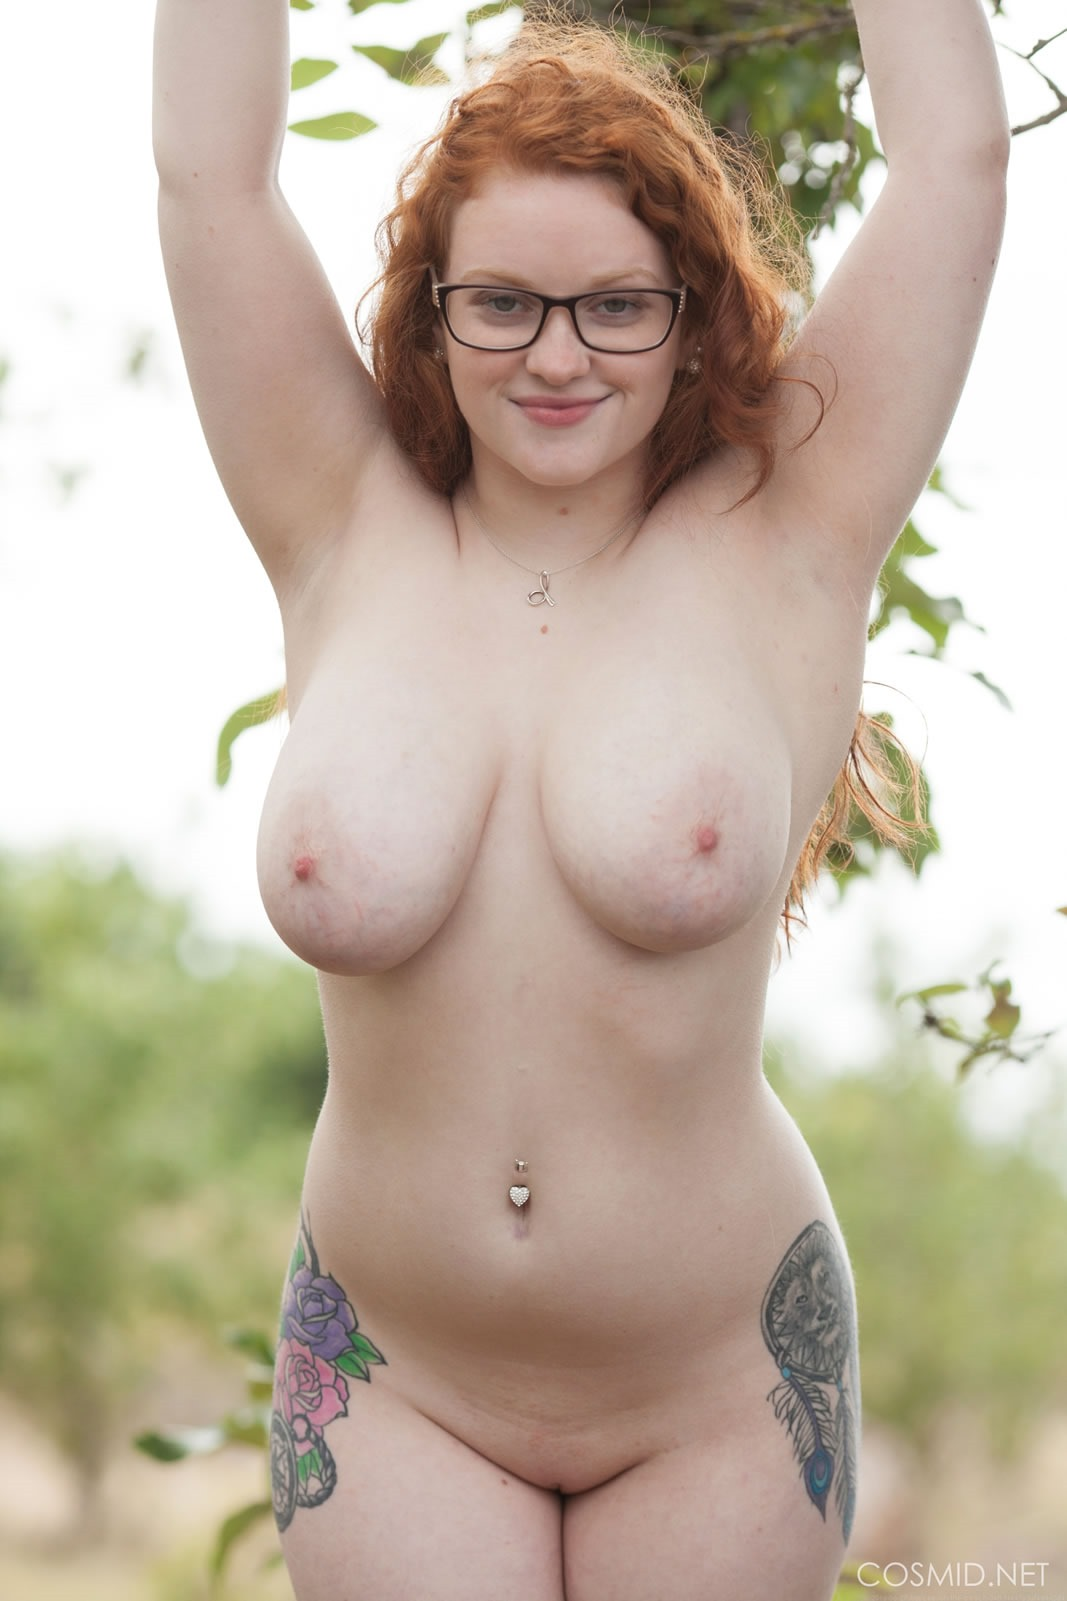 Teen girls gone wild tits